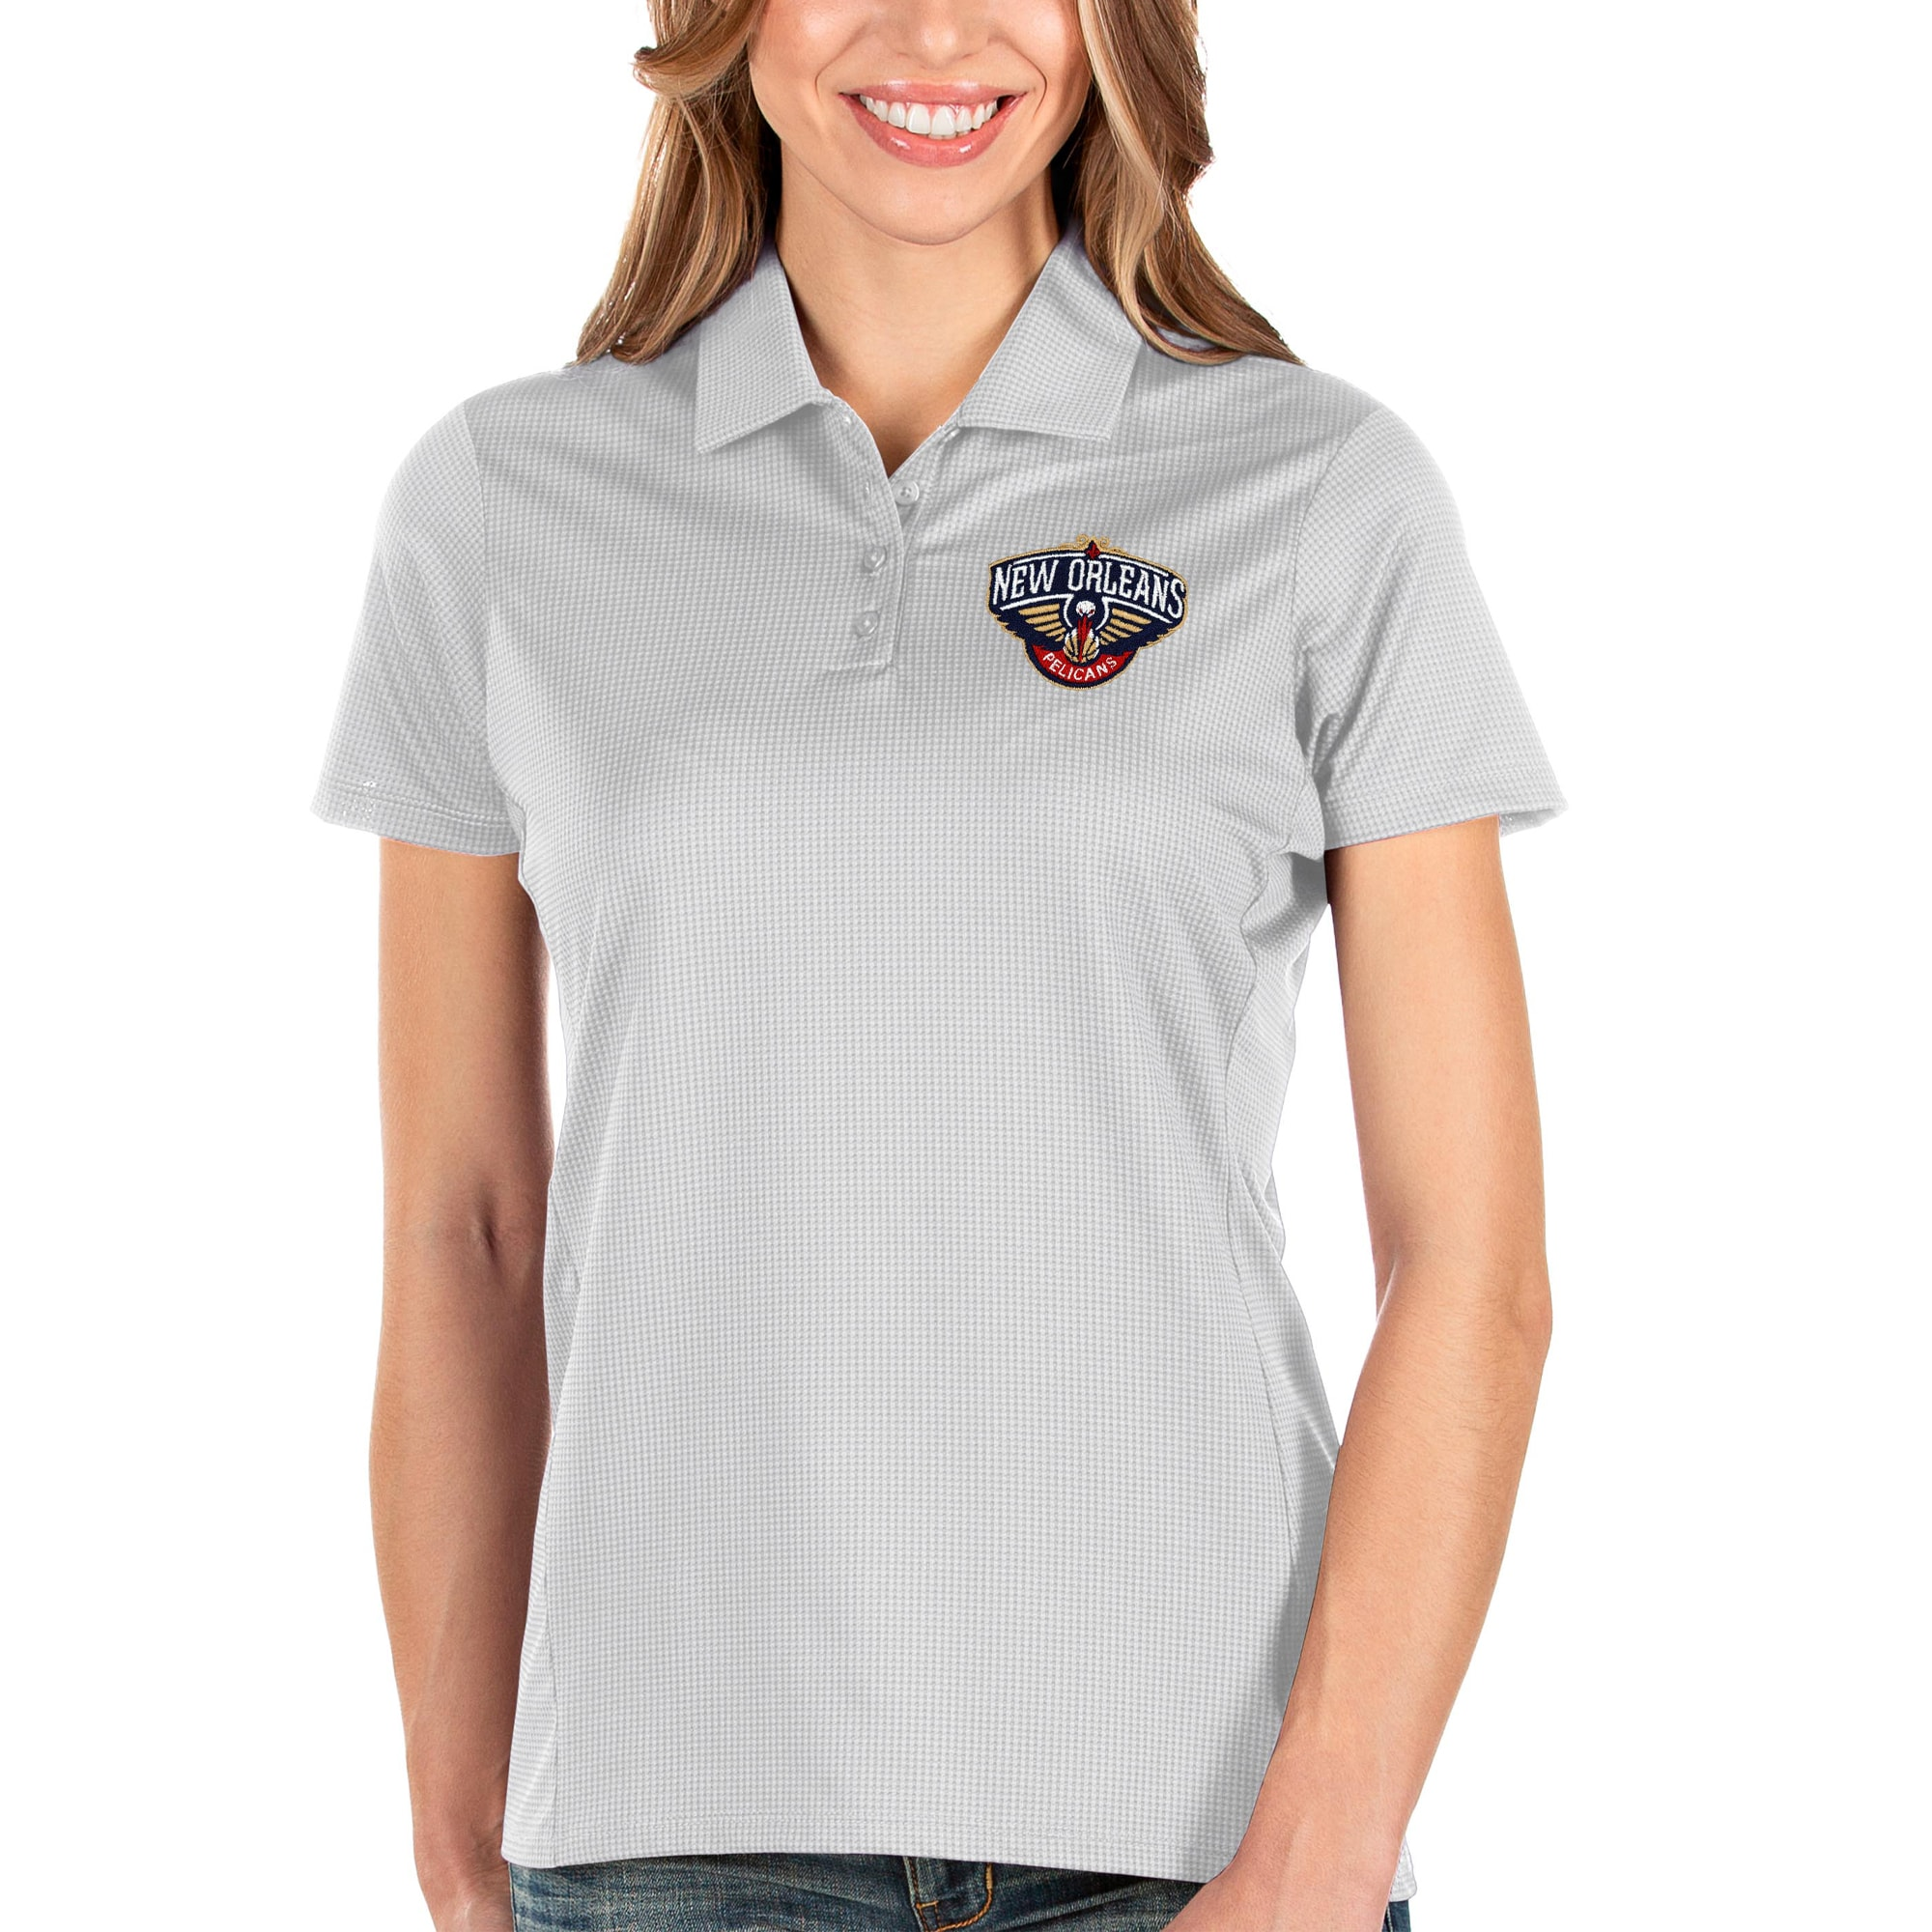 New Orleans Pelicans Antigua Women's Balance Polo - White